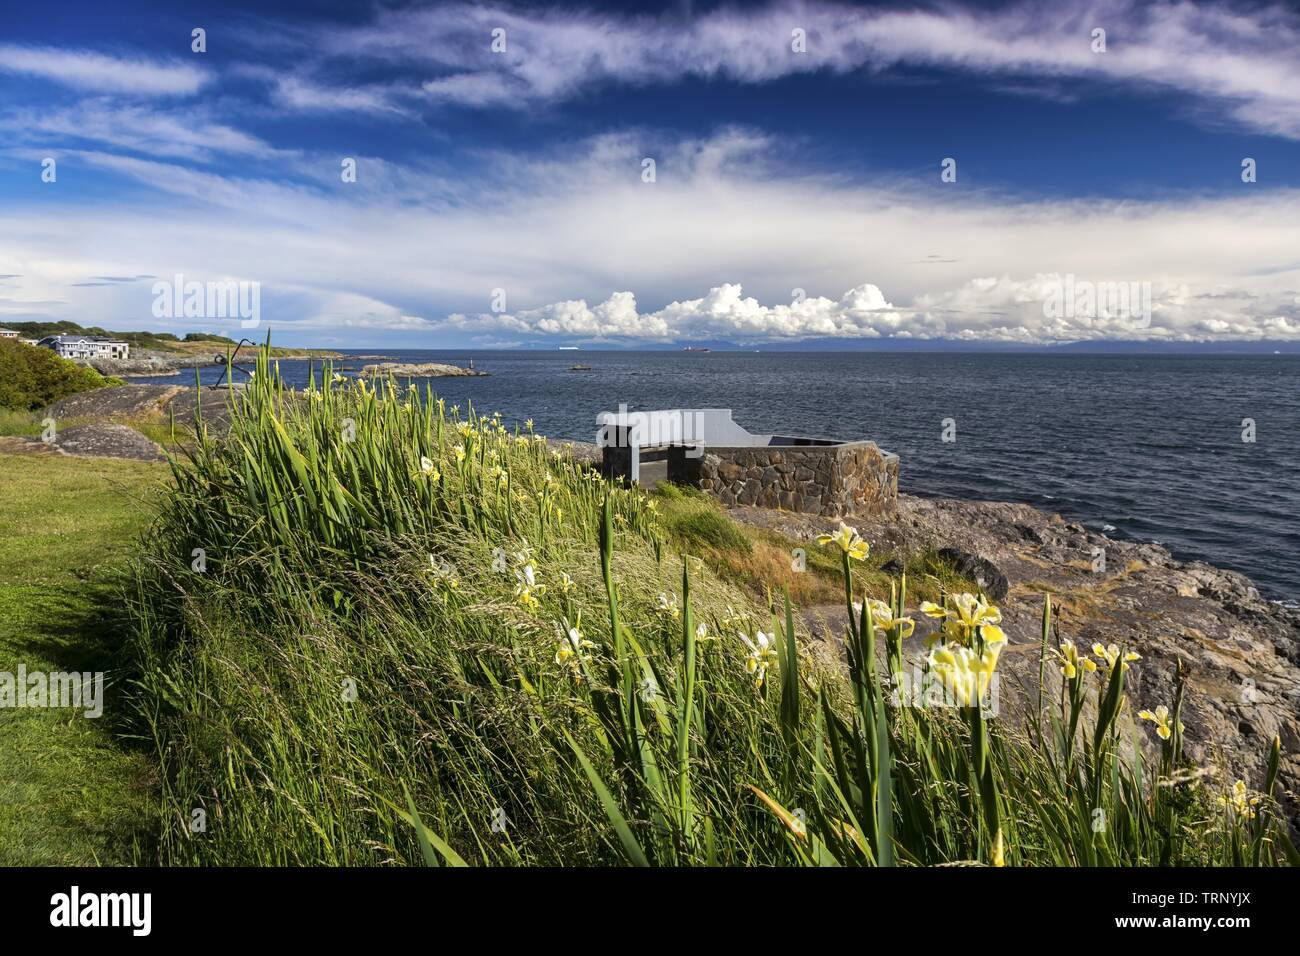 Sweeping Landscape View of Juan De Fuca strait and Dramatic Sky over Distant Olympic Peninsula in Washington, USA from Saxe Point Park in Victoria BC Stock Photo